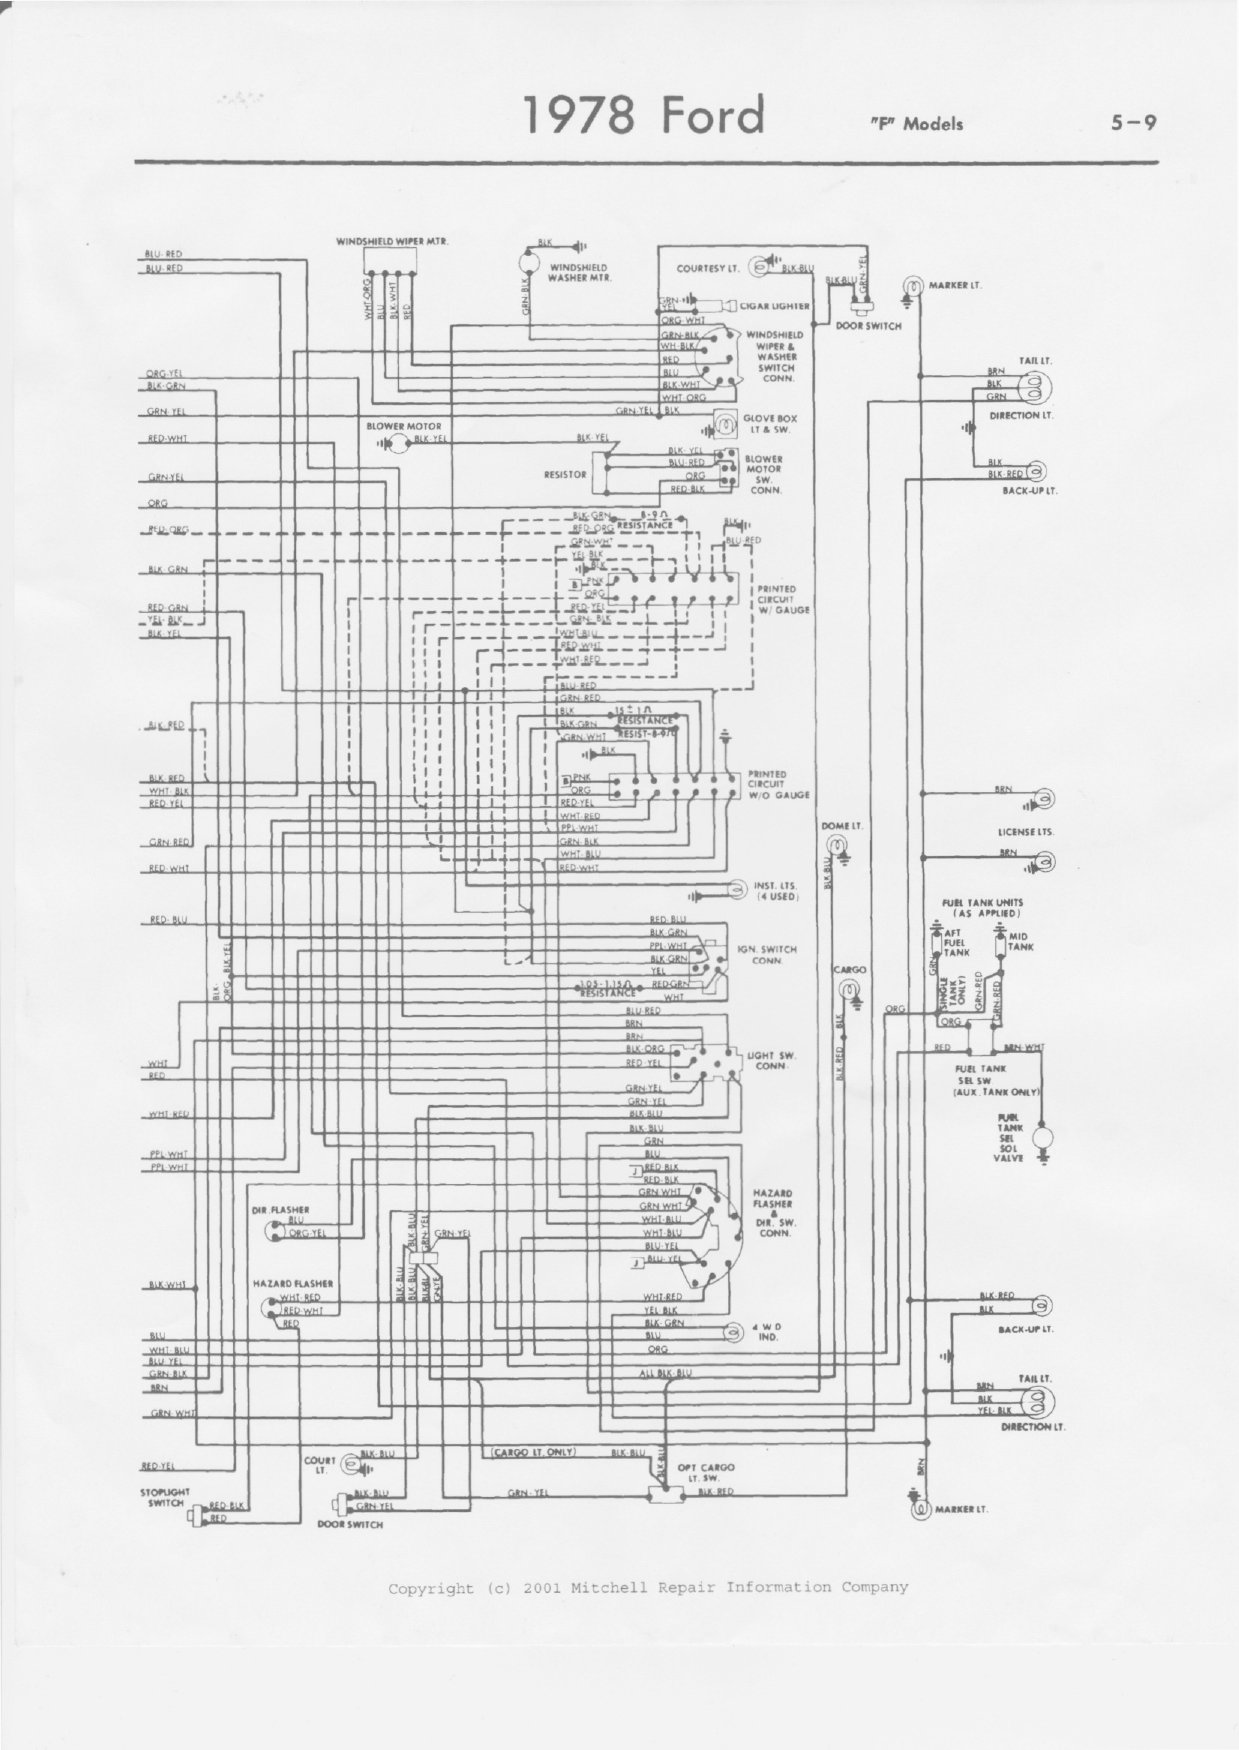 Light Switch Diagram 1978 Ford Seniorsclub It Wires Smell Wires Smell Seniorsclub It